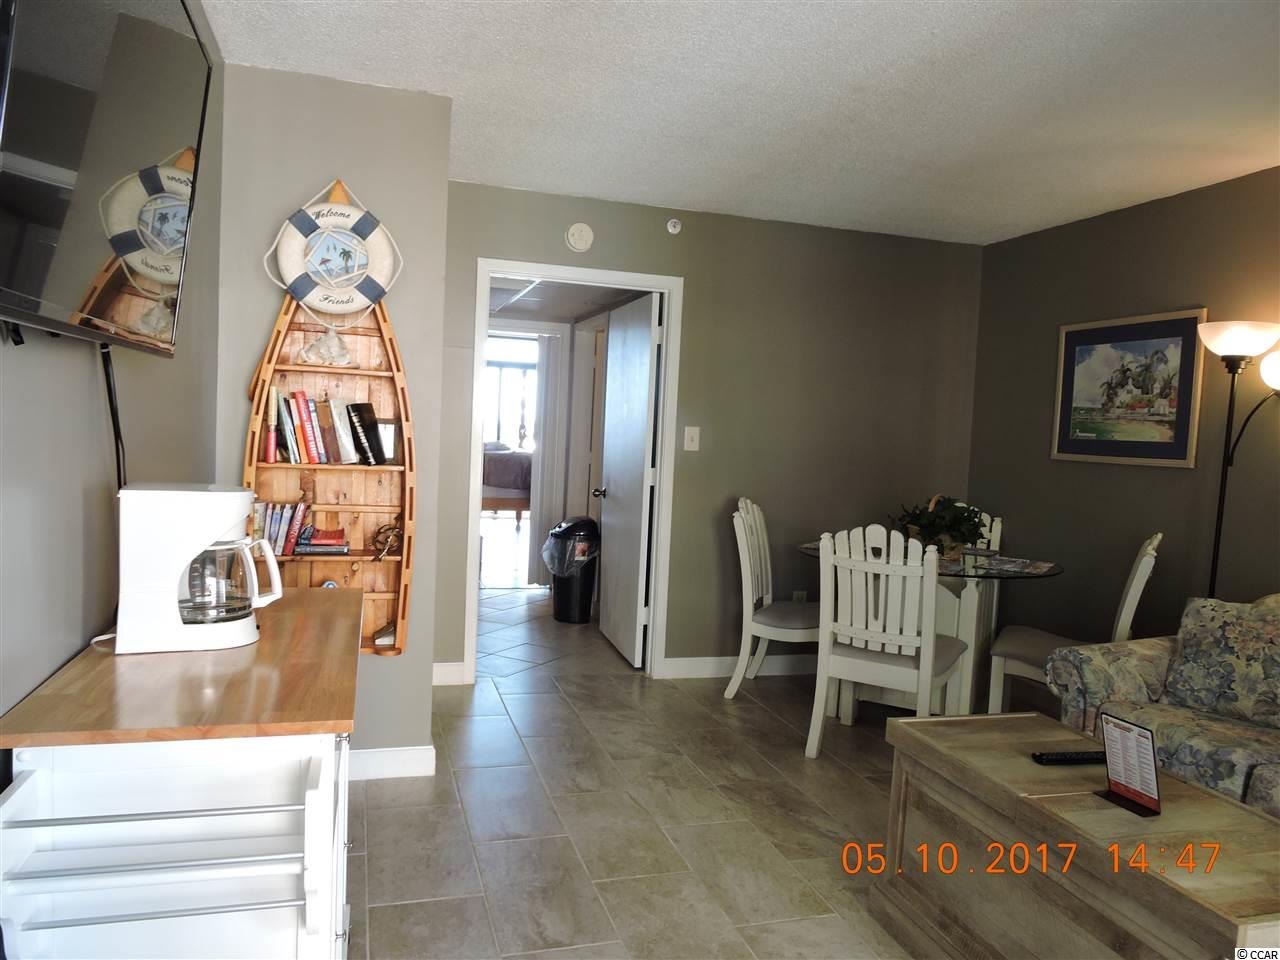 MLS #1710952 at  VERANDAS, THE - NMB for sale